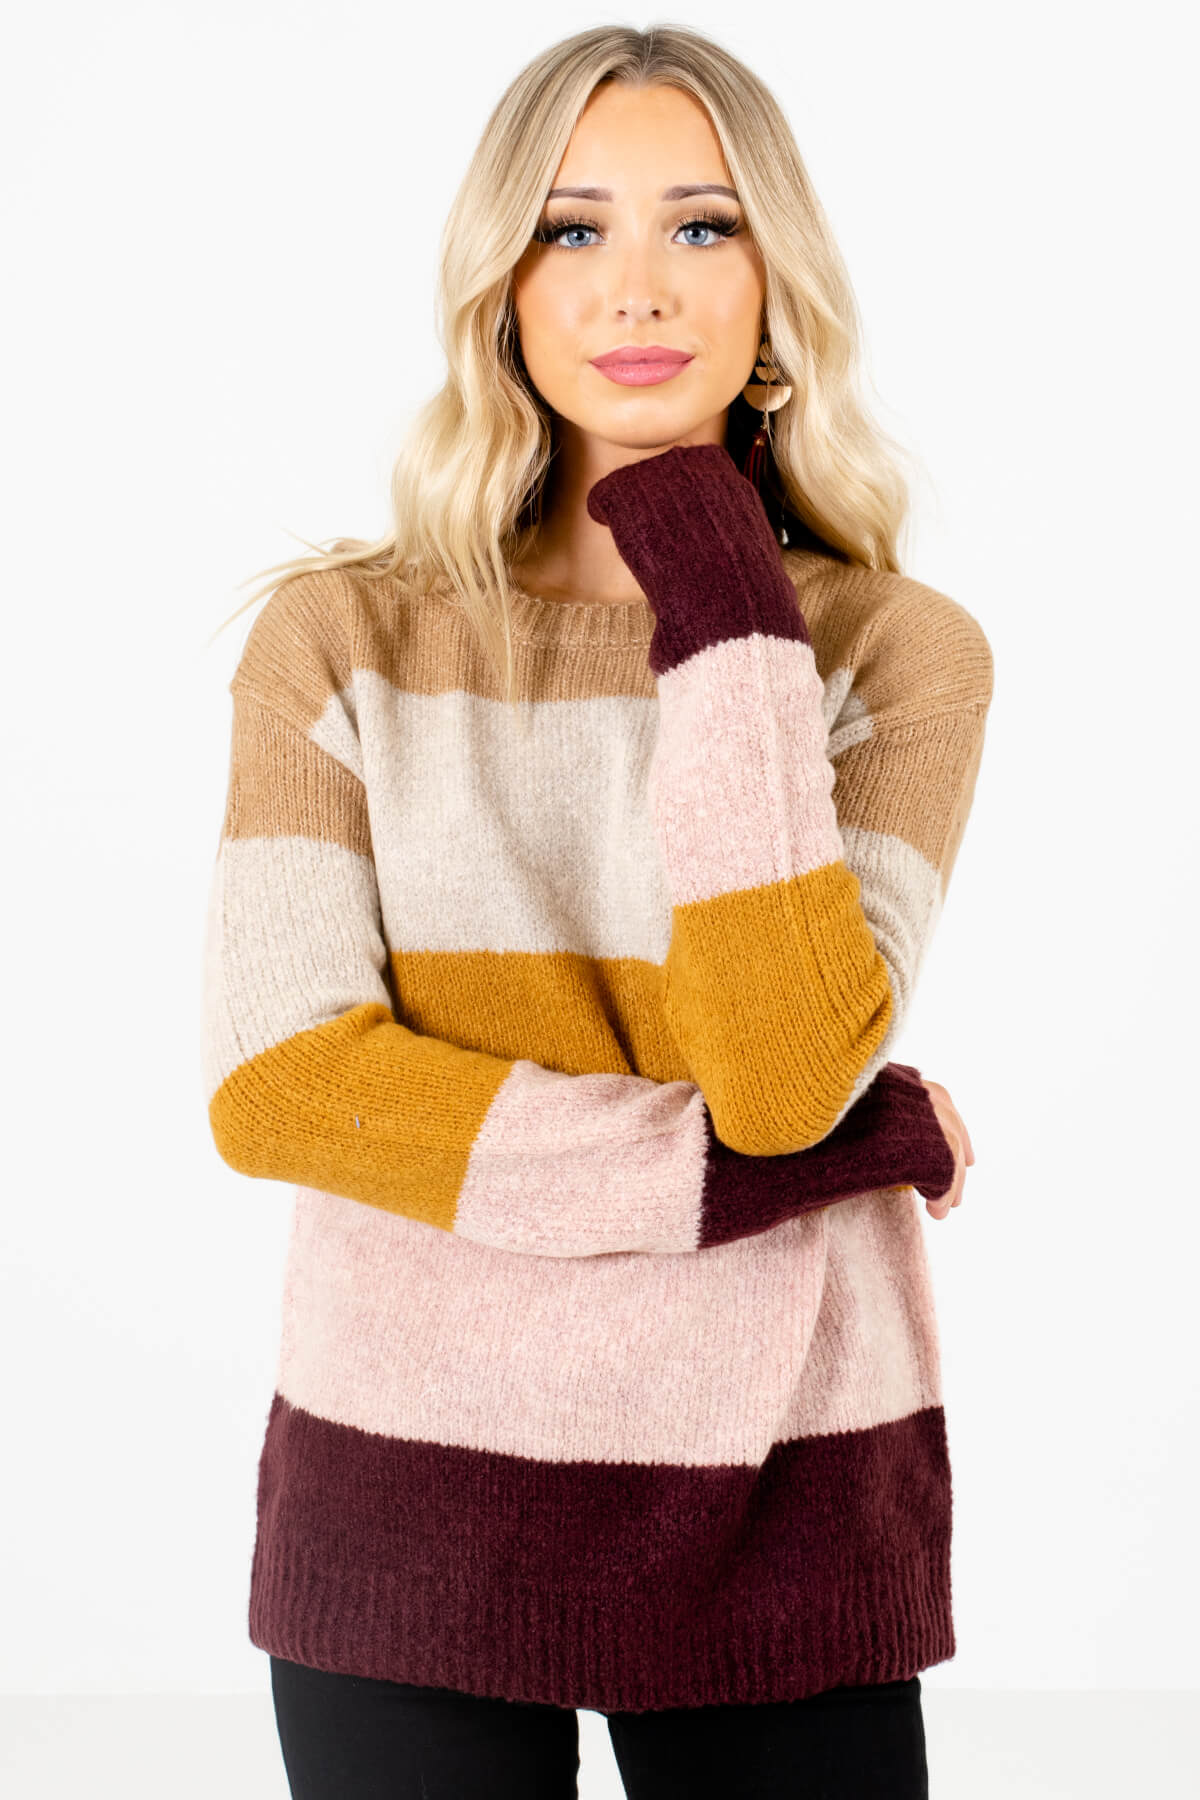 Mustard Yellow Multicolored Striped Pattern Boutique Sweaters for Women